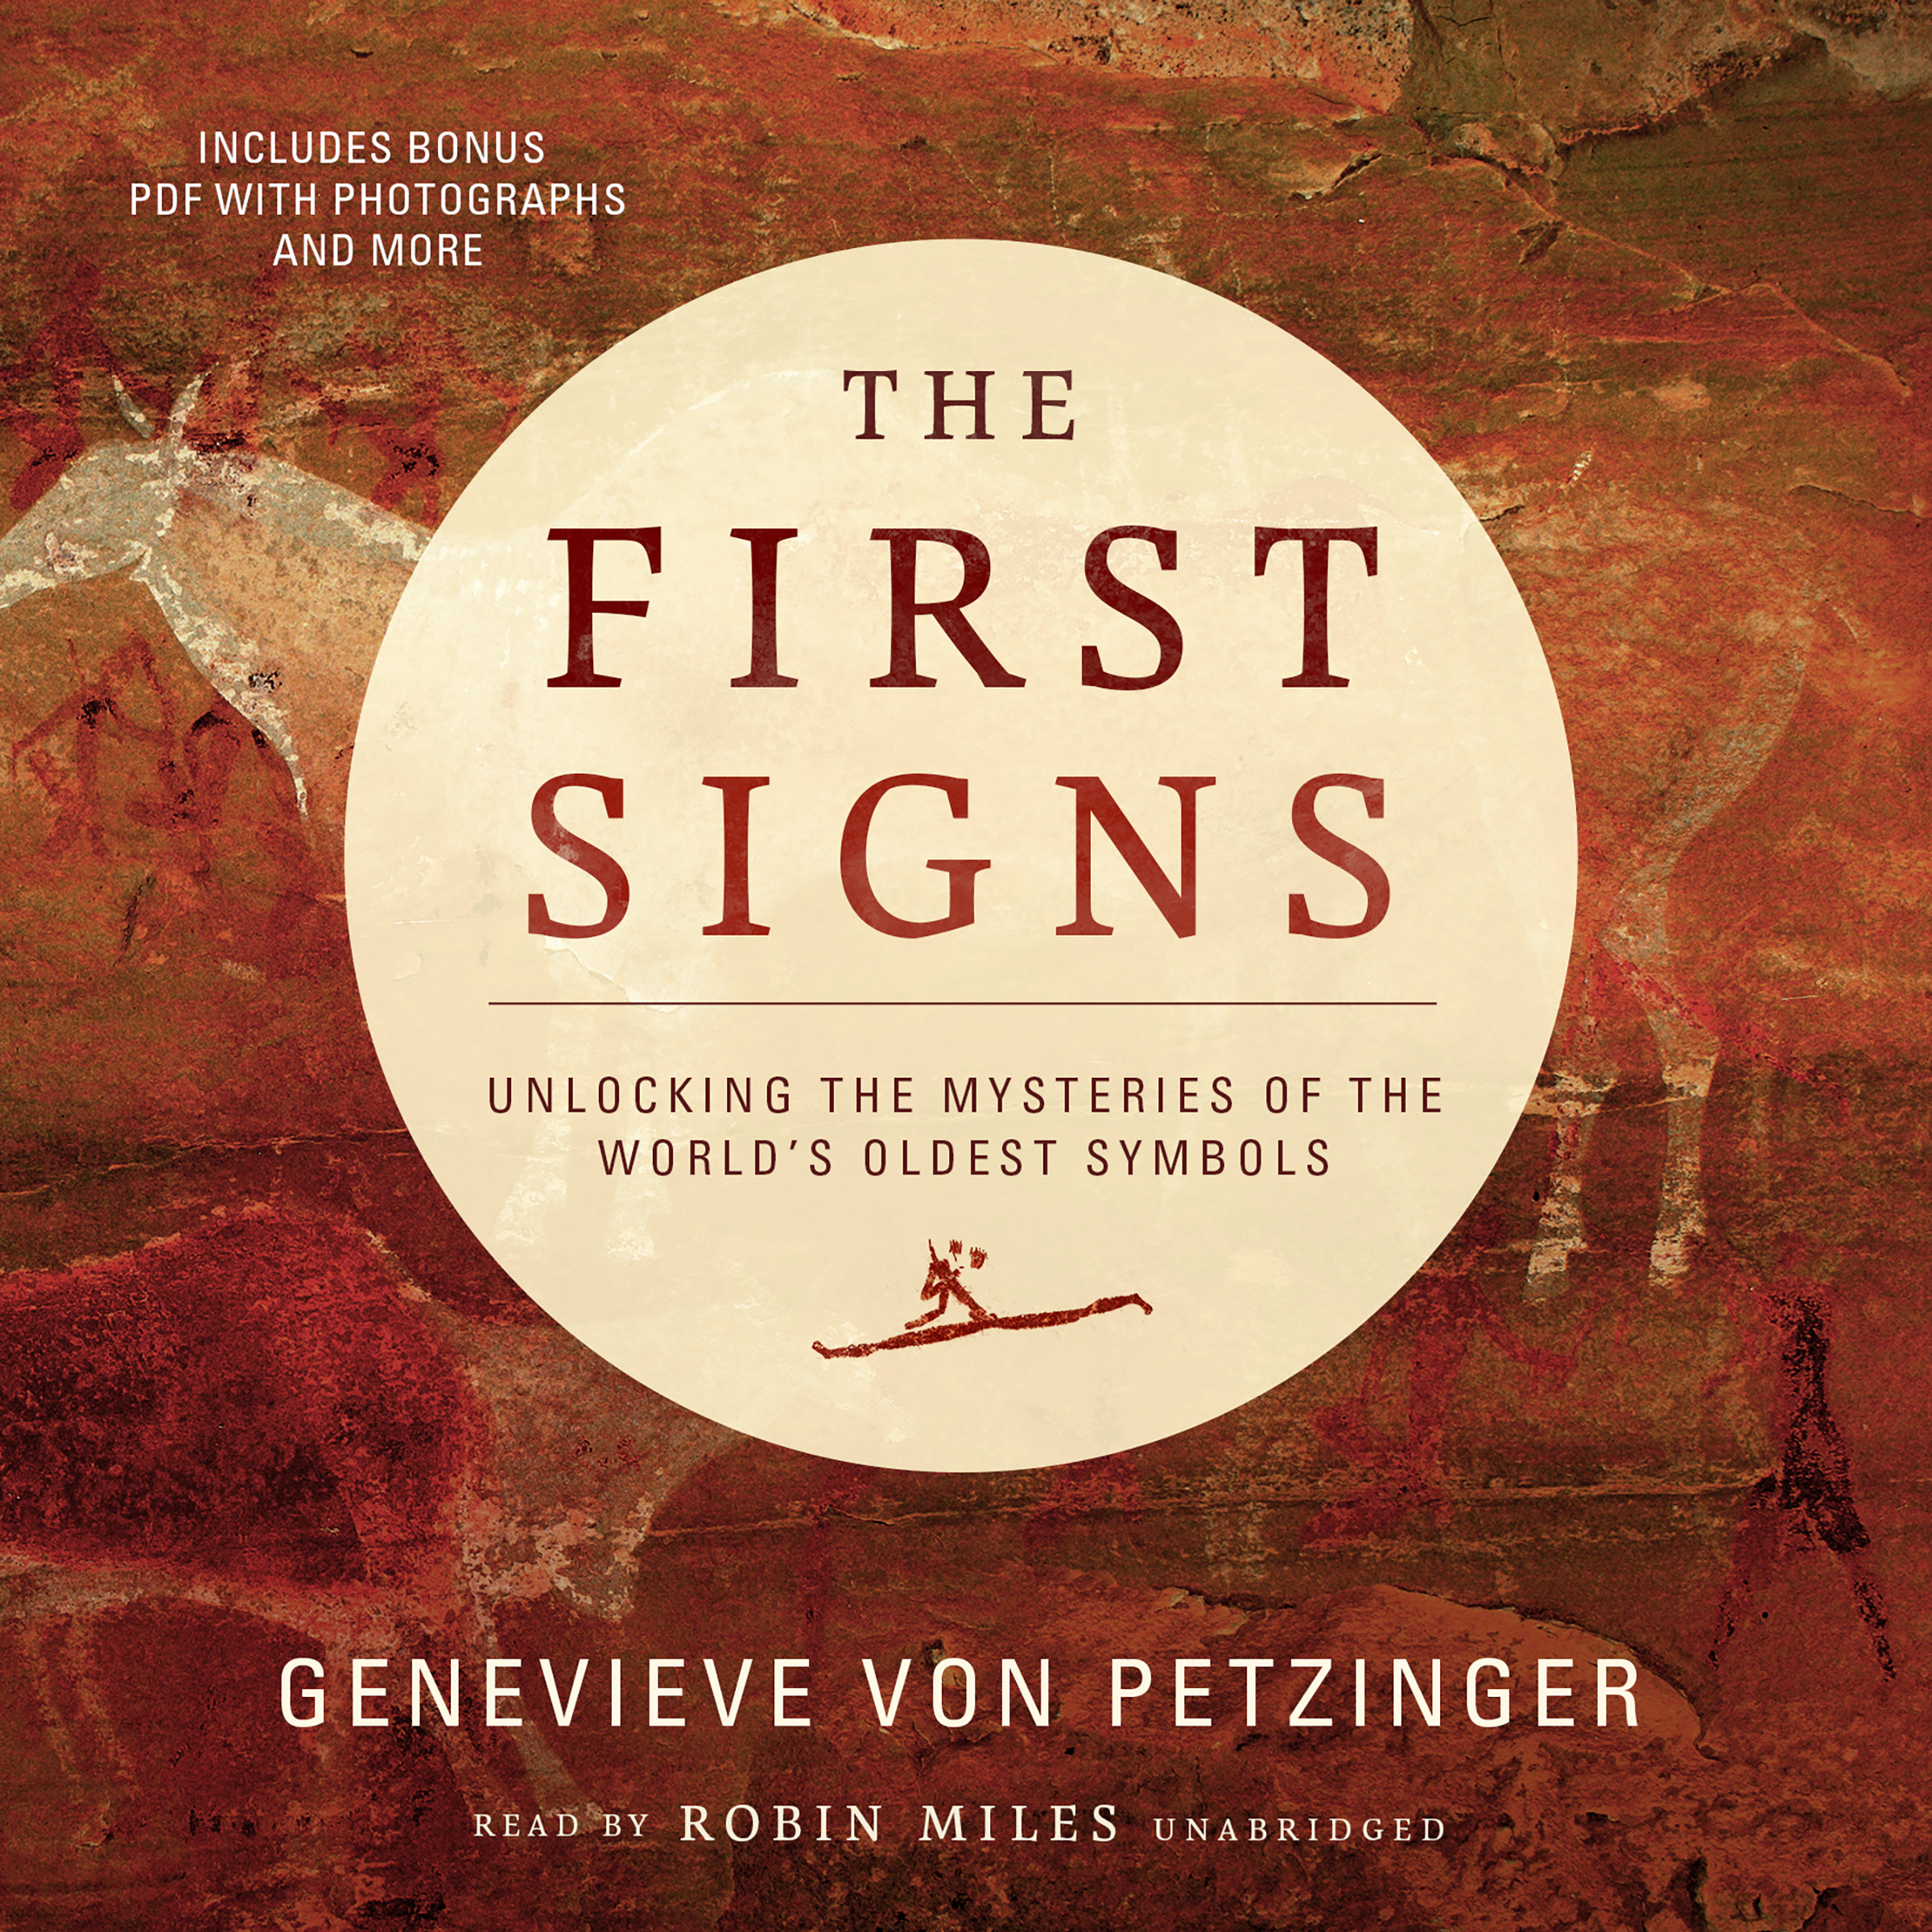 The First Signs: Unlocking the mysteries of the world's oldest symbols by Genevieve von Petzinger